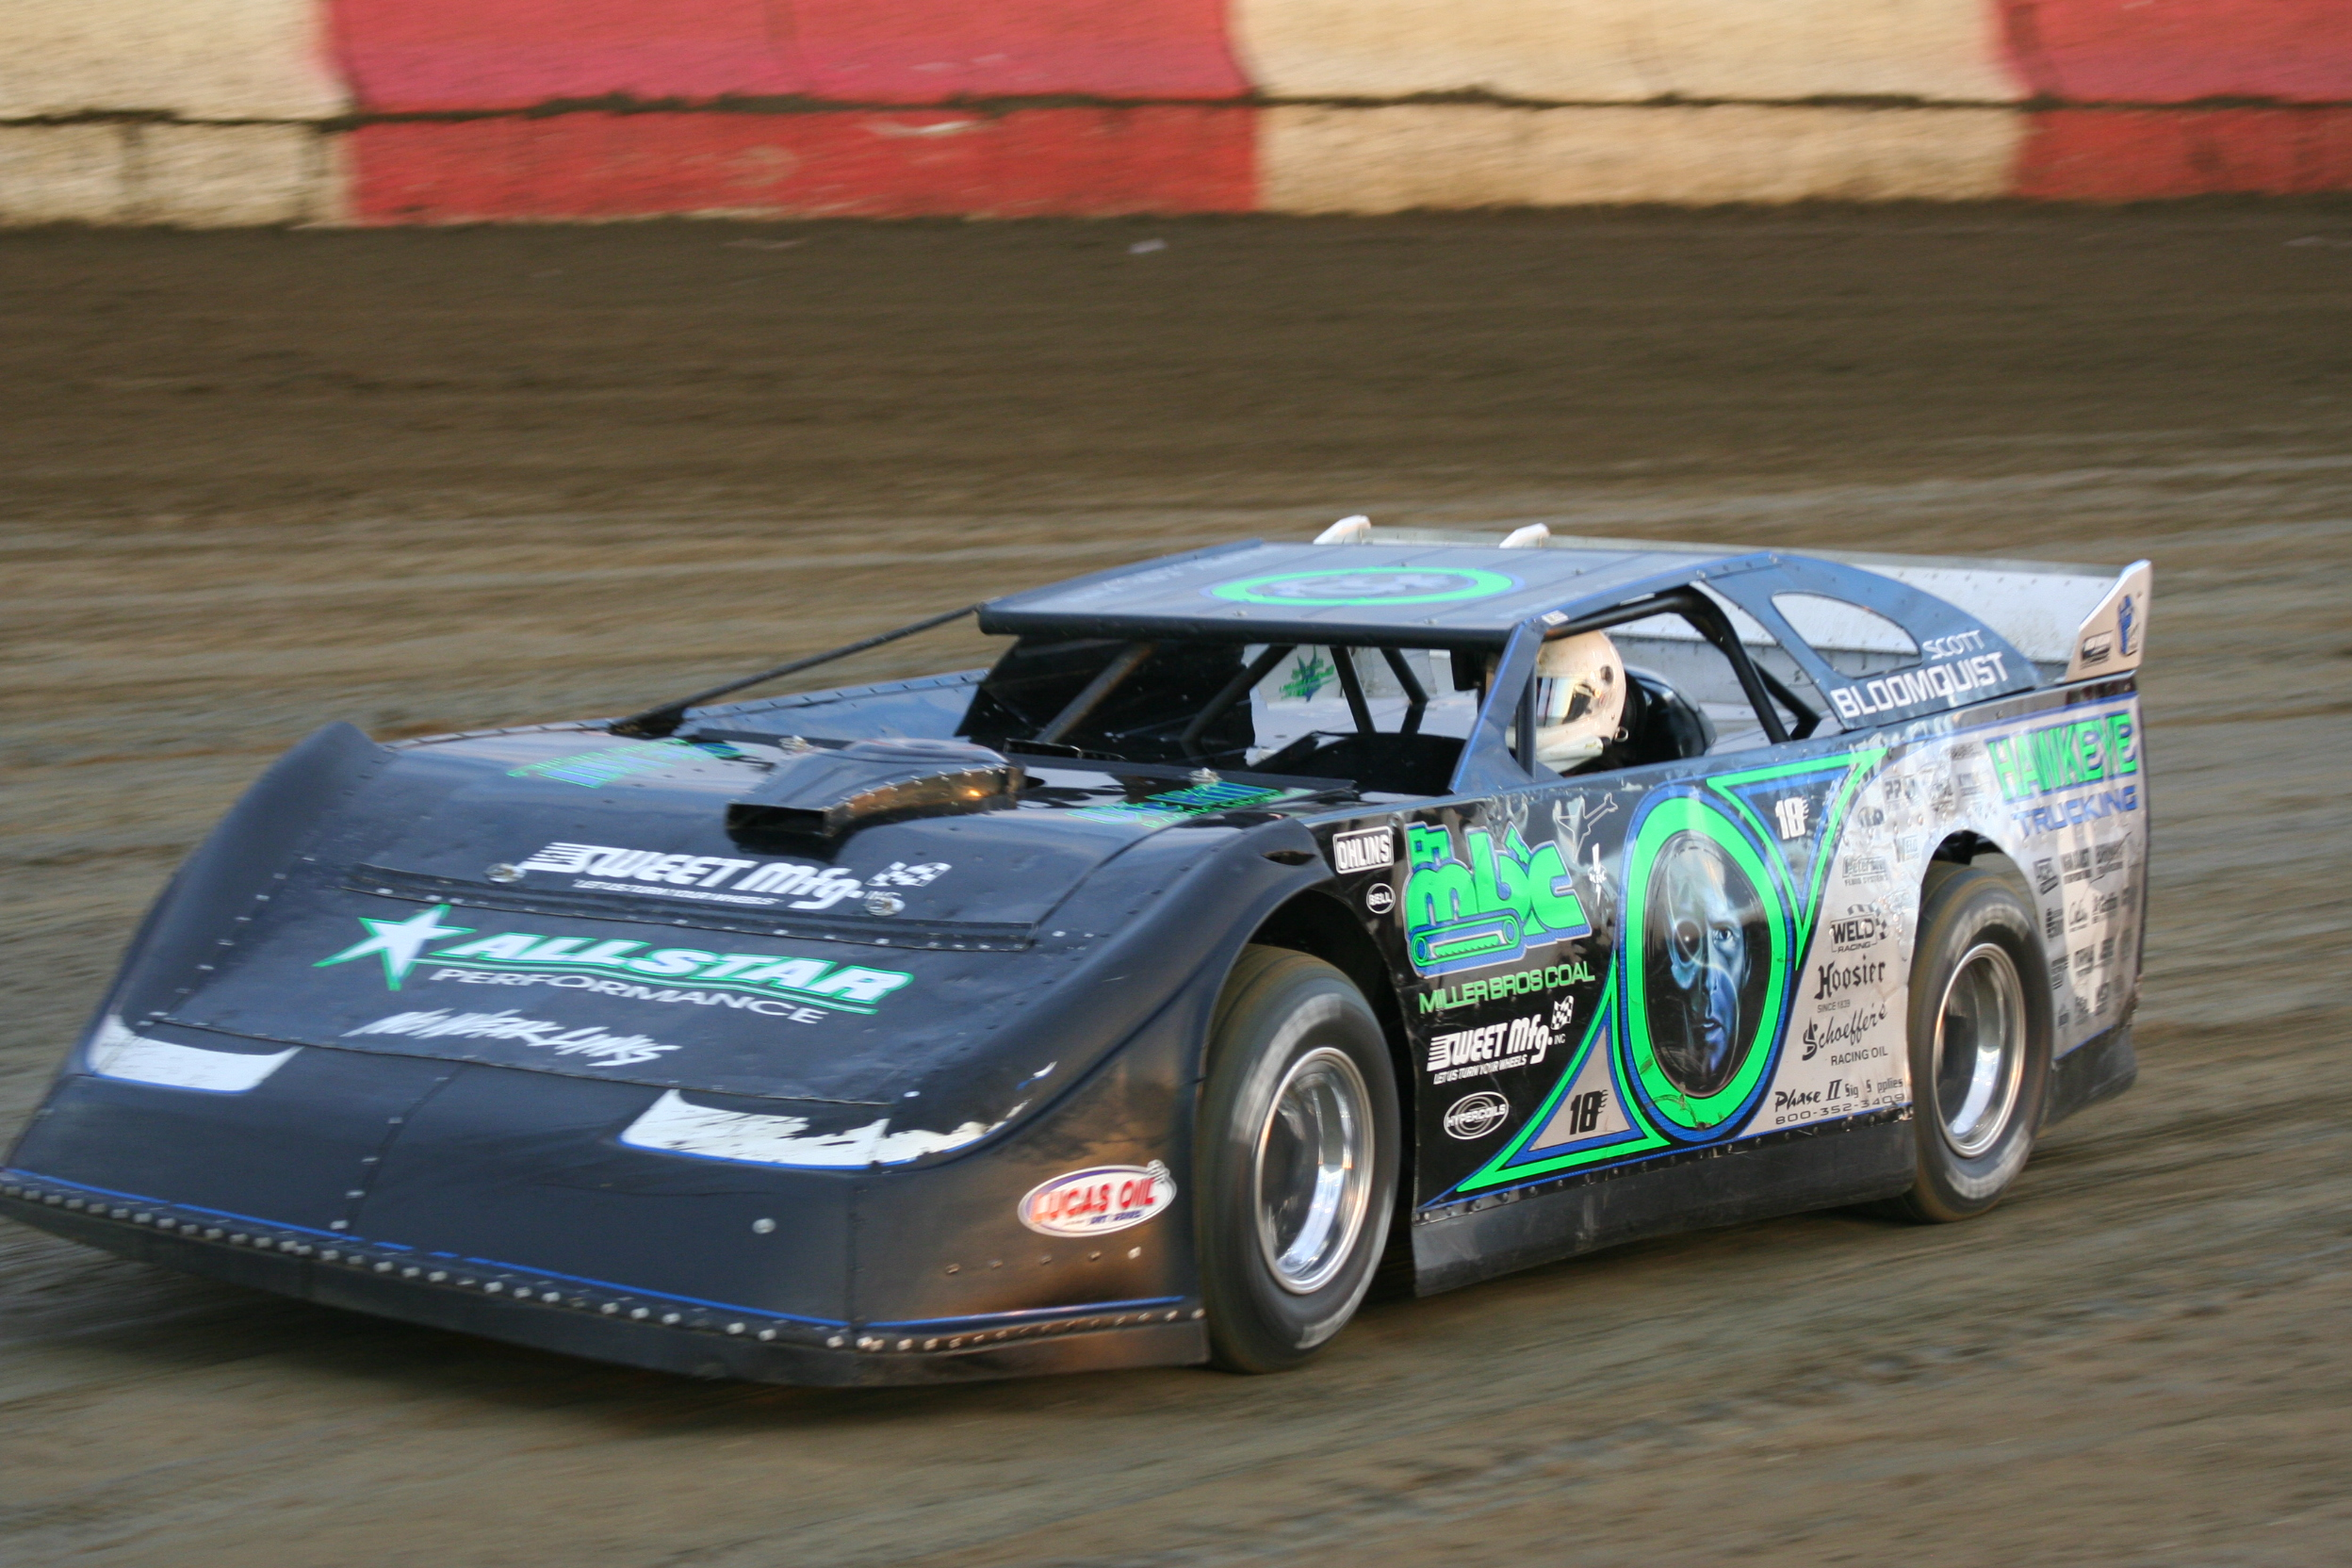 File:ScottBloomquist2008EastBayWinternationals.jpg - Wikimedia Commons